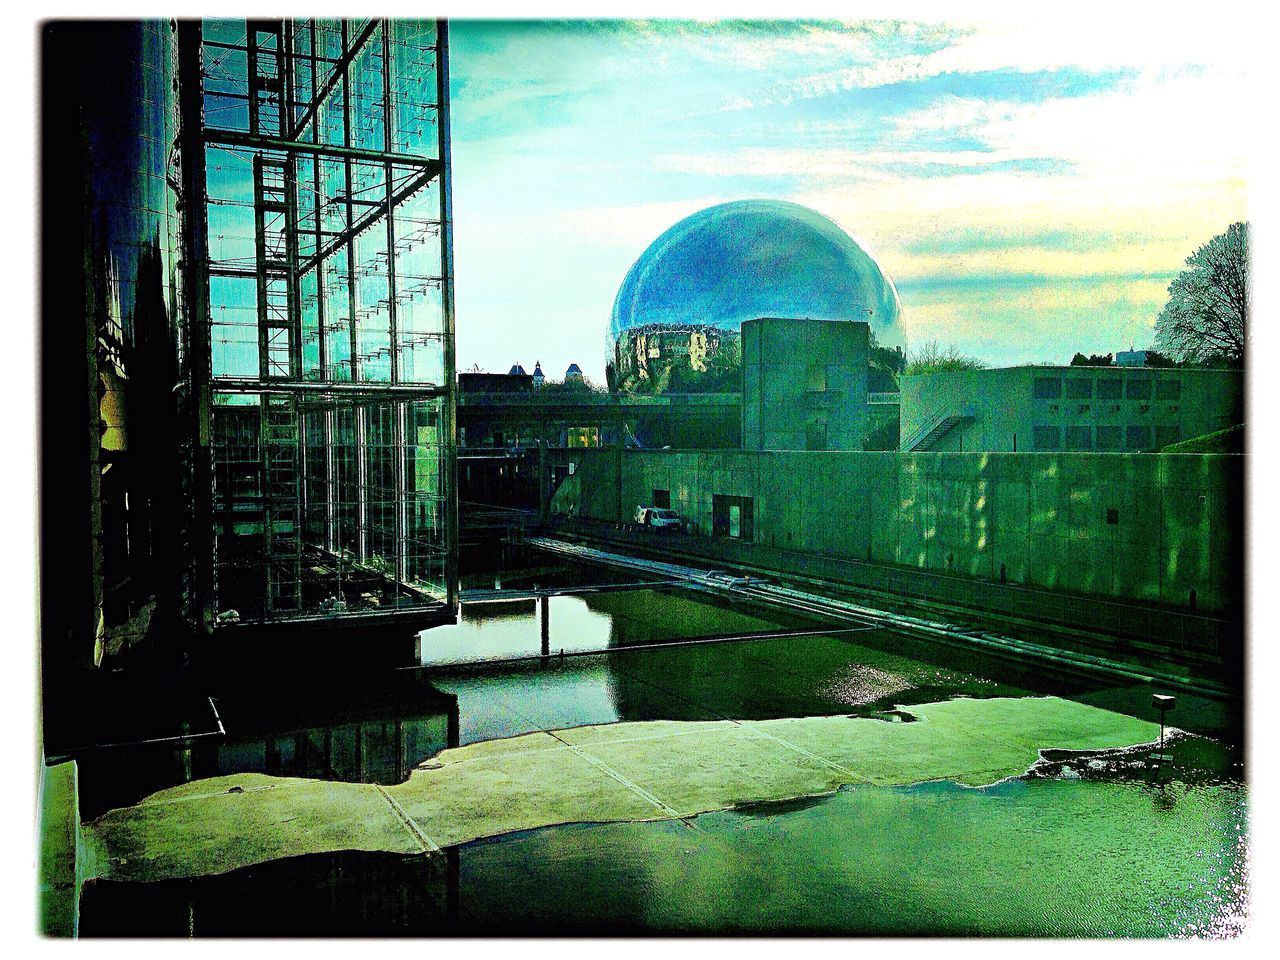 built structure, architecture, building exterior, reflection, dome, no people, sky, window, day, outdoors, city